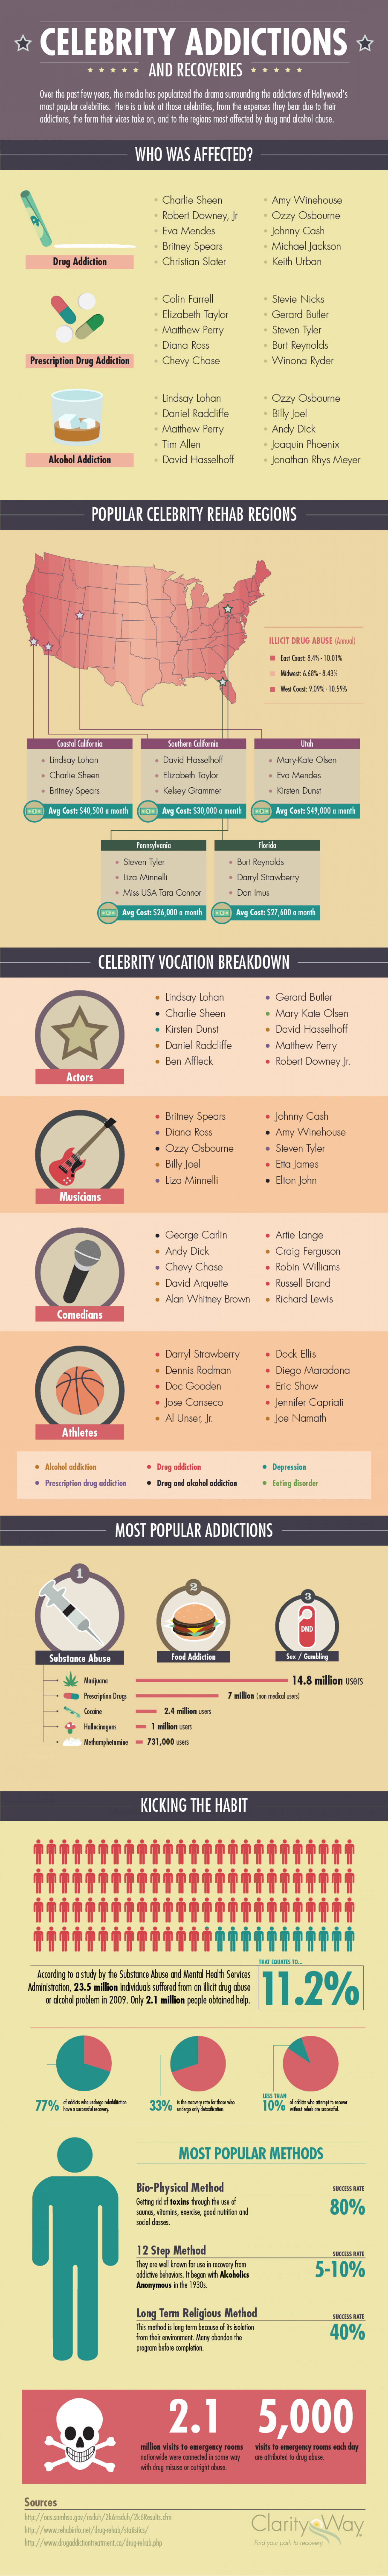 Celebrity Addictions and Recoveries Infographic